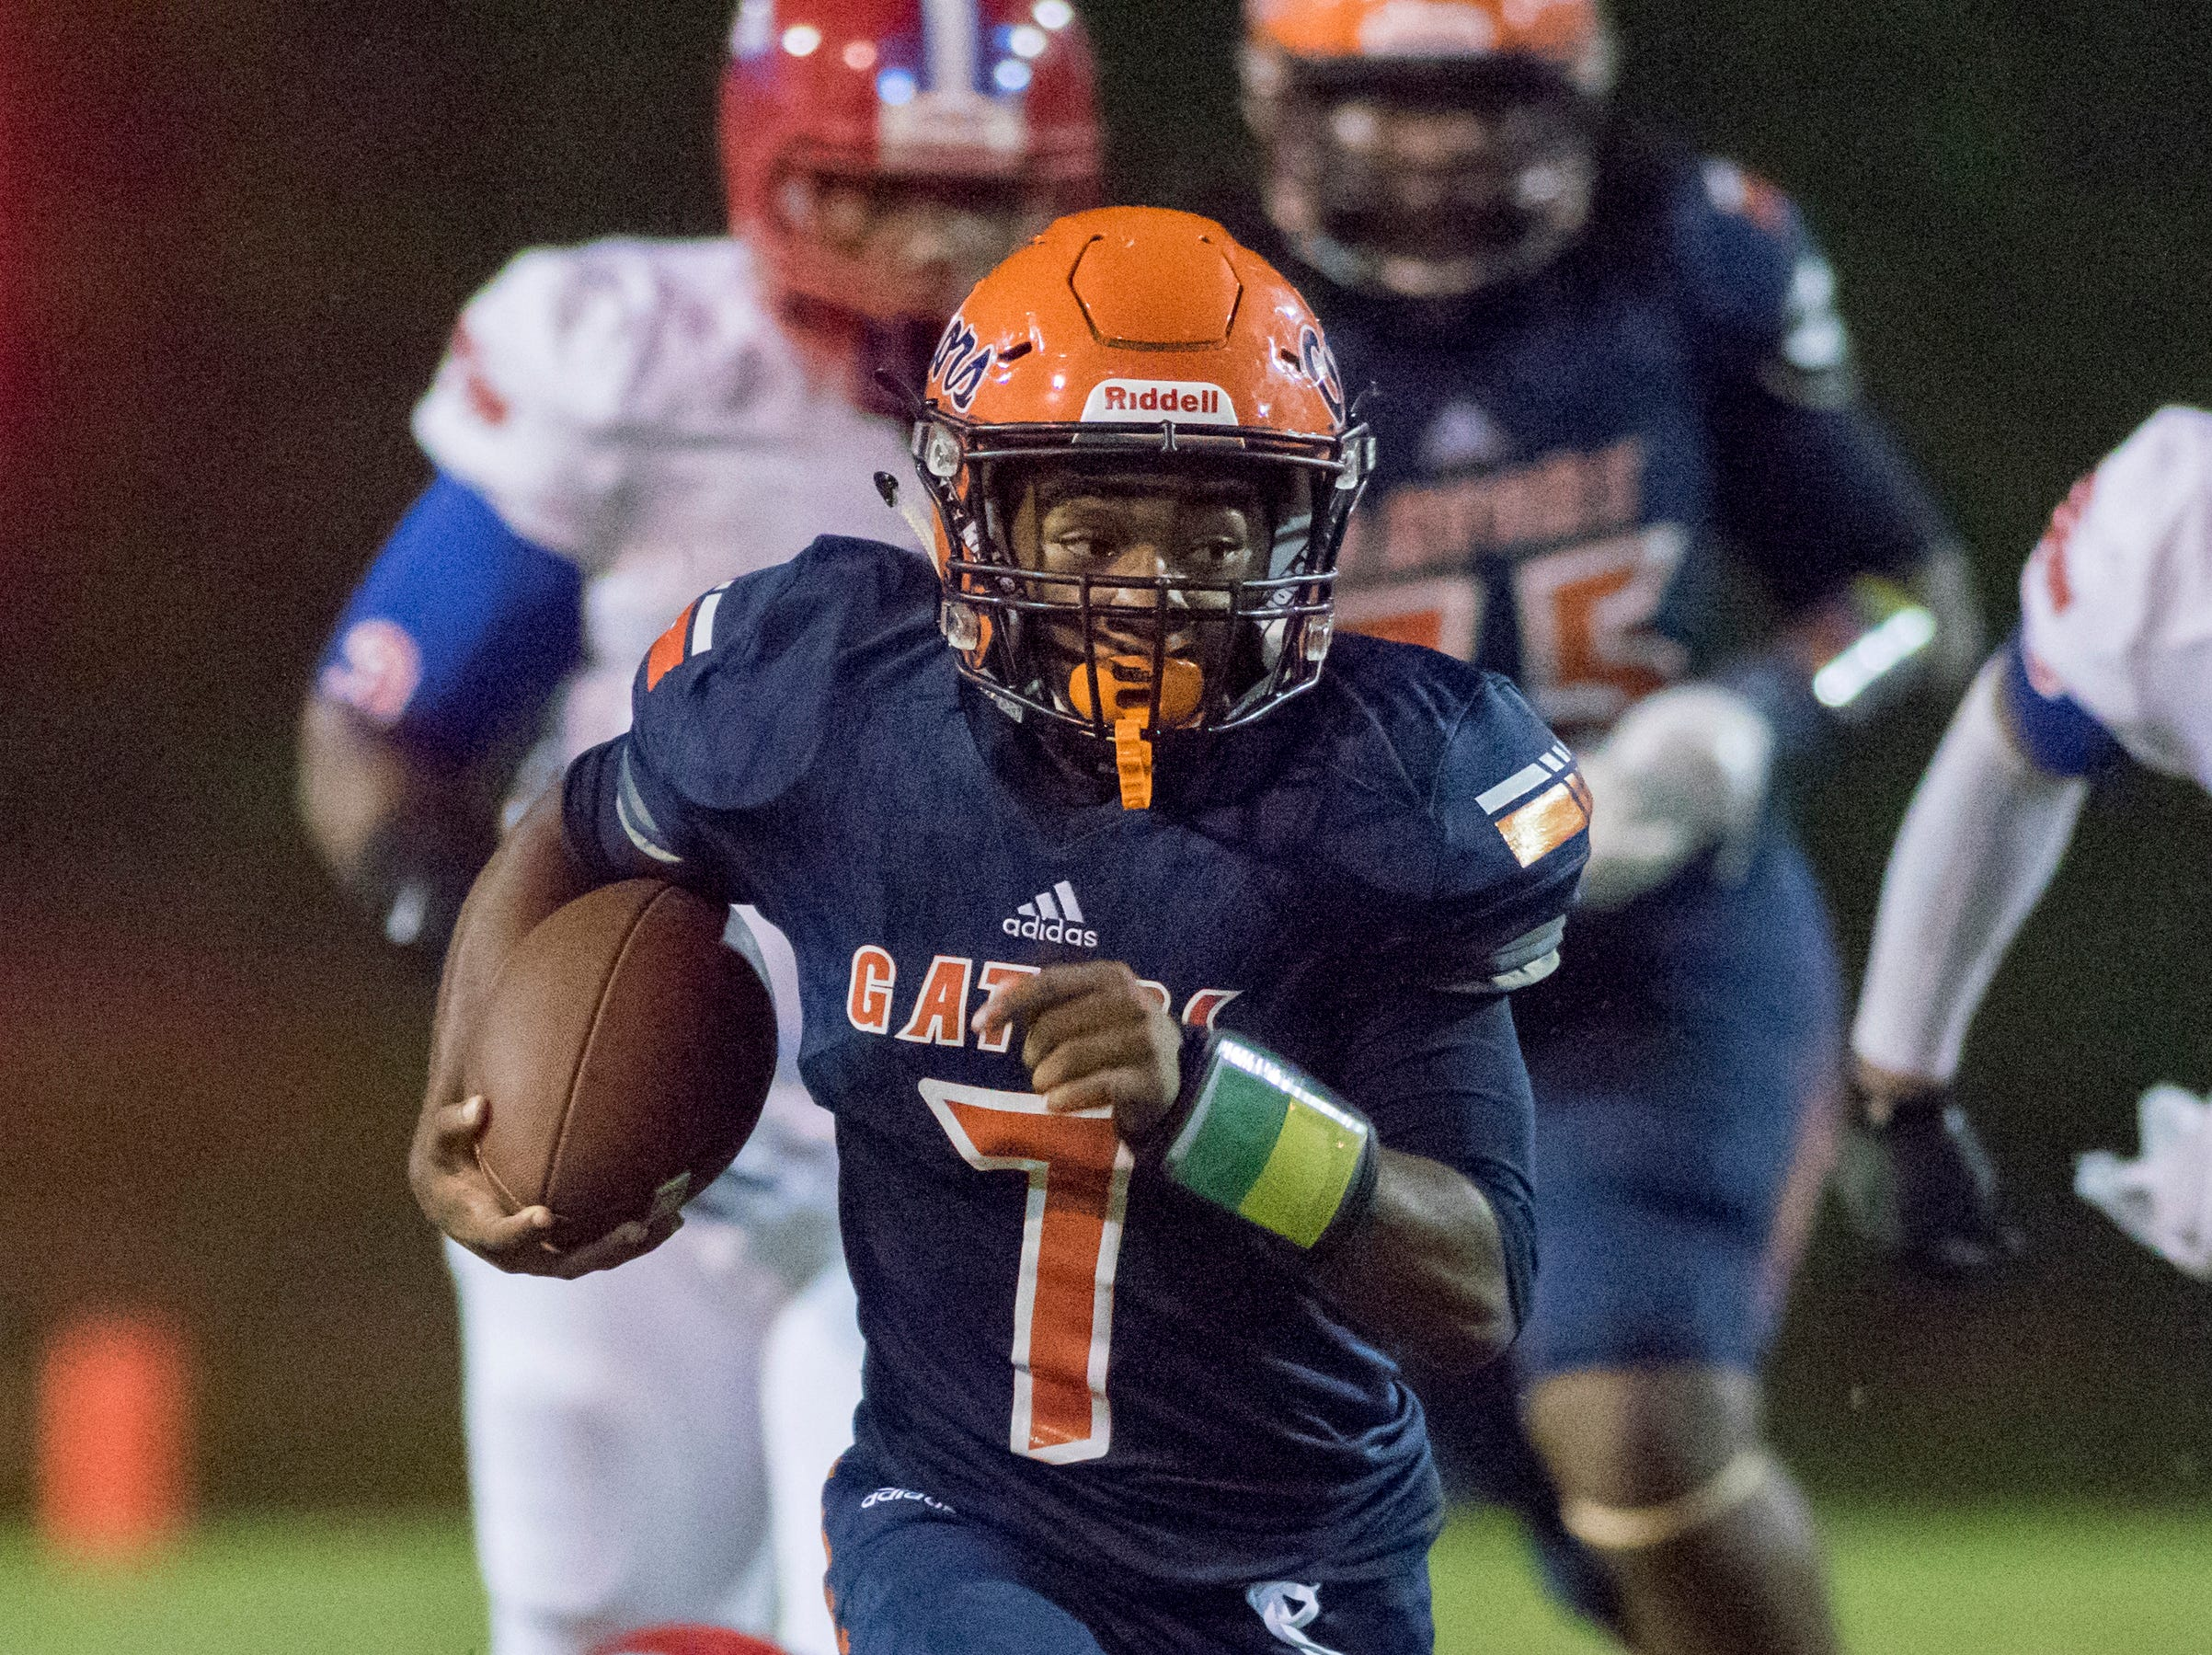 Kyaire Hall (7) gets a big pick up after slipping a tackle during the Pine Forest vs Escambia football game at Escambia High School in Pensacola on Friday, September 28, 2018.